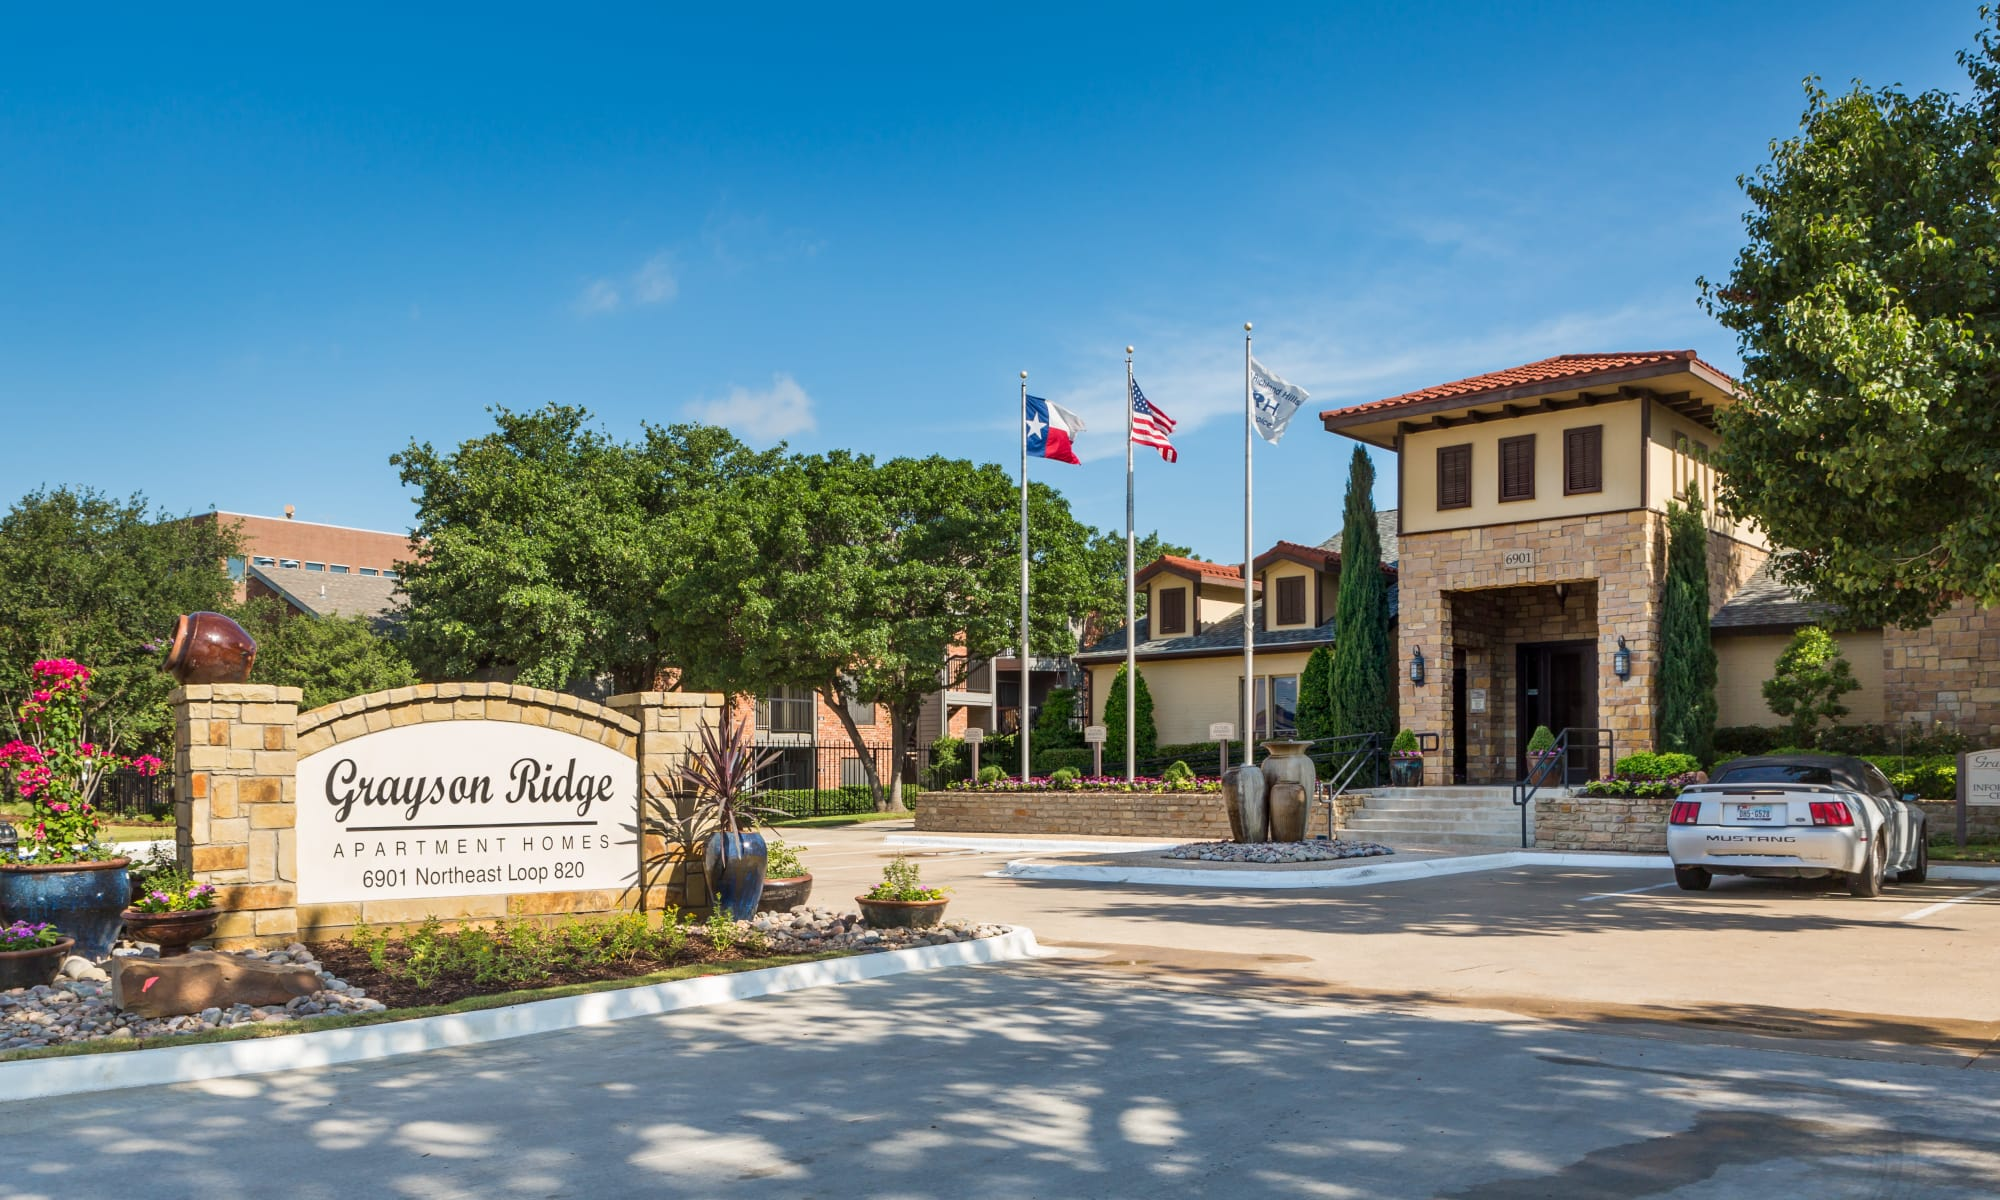 Apartments at Grayson Ridge in North Richland Hills, Texas